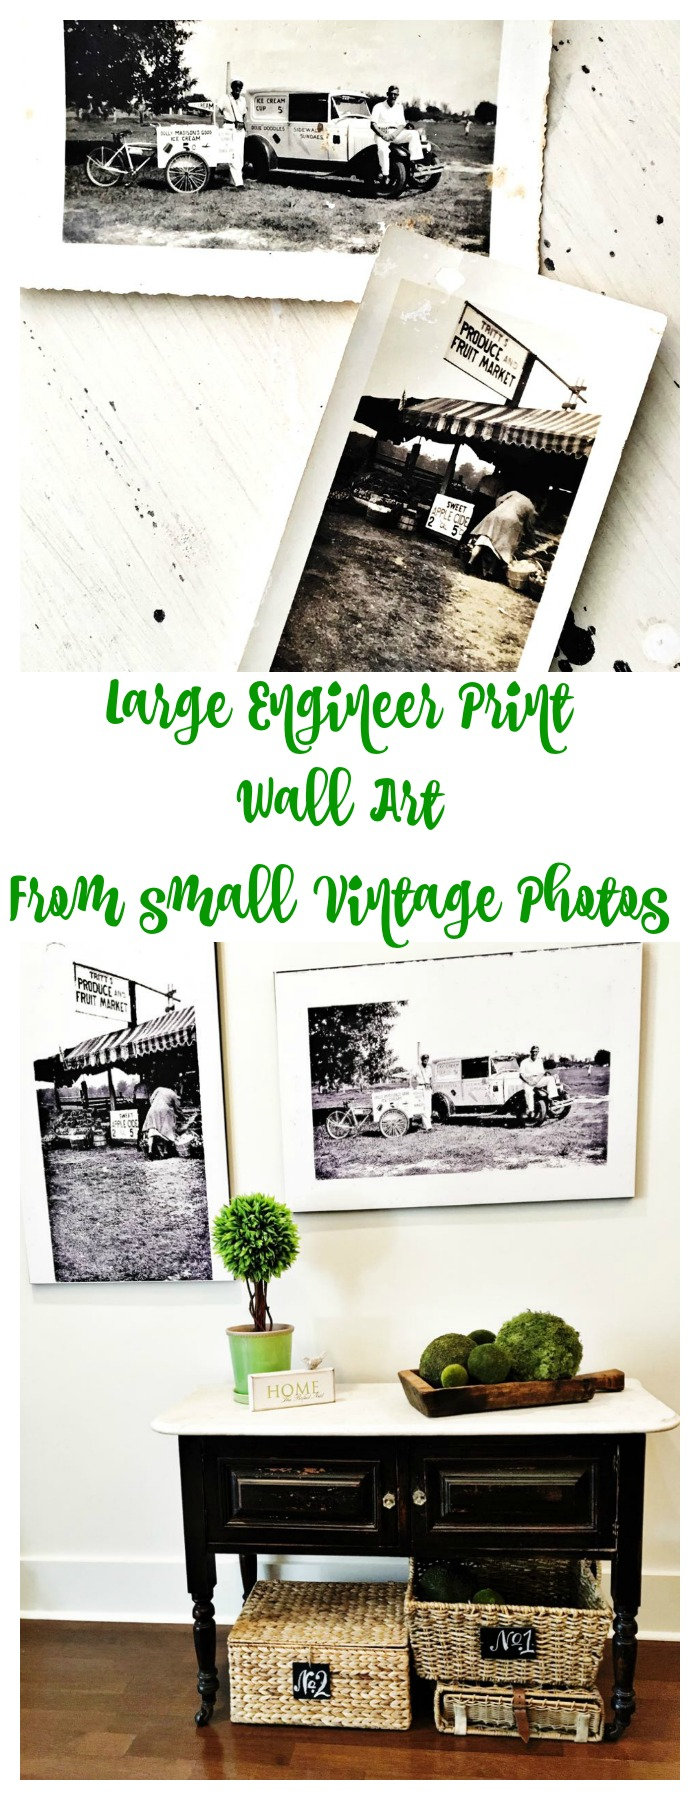 Large Engineer Print Wall Decor Art from small vintage photos.